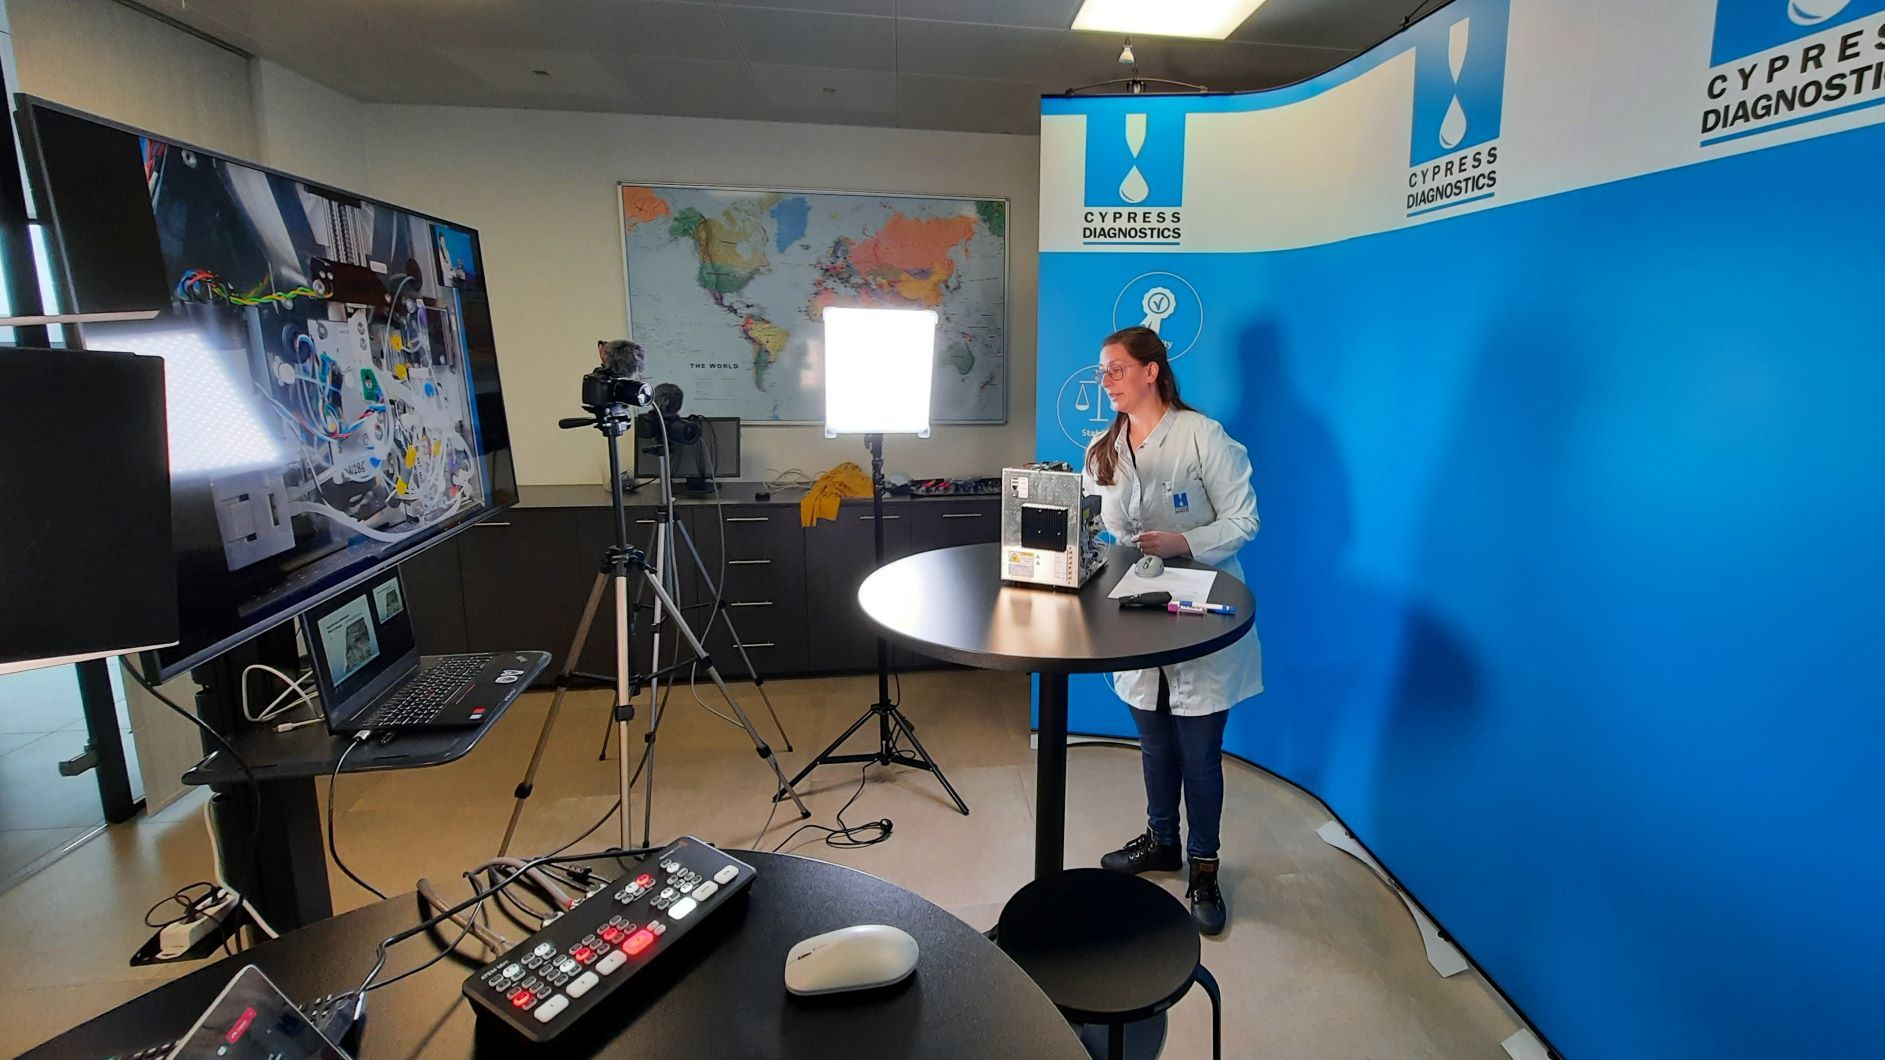 technical workshops with HD quality, zoom-in details of the analyzer, video chat questions, and answers for the participants during our live online training